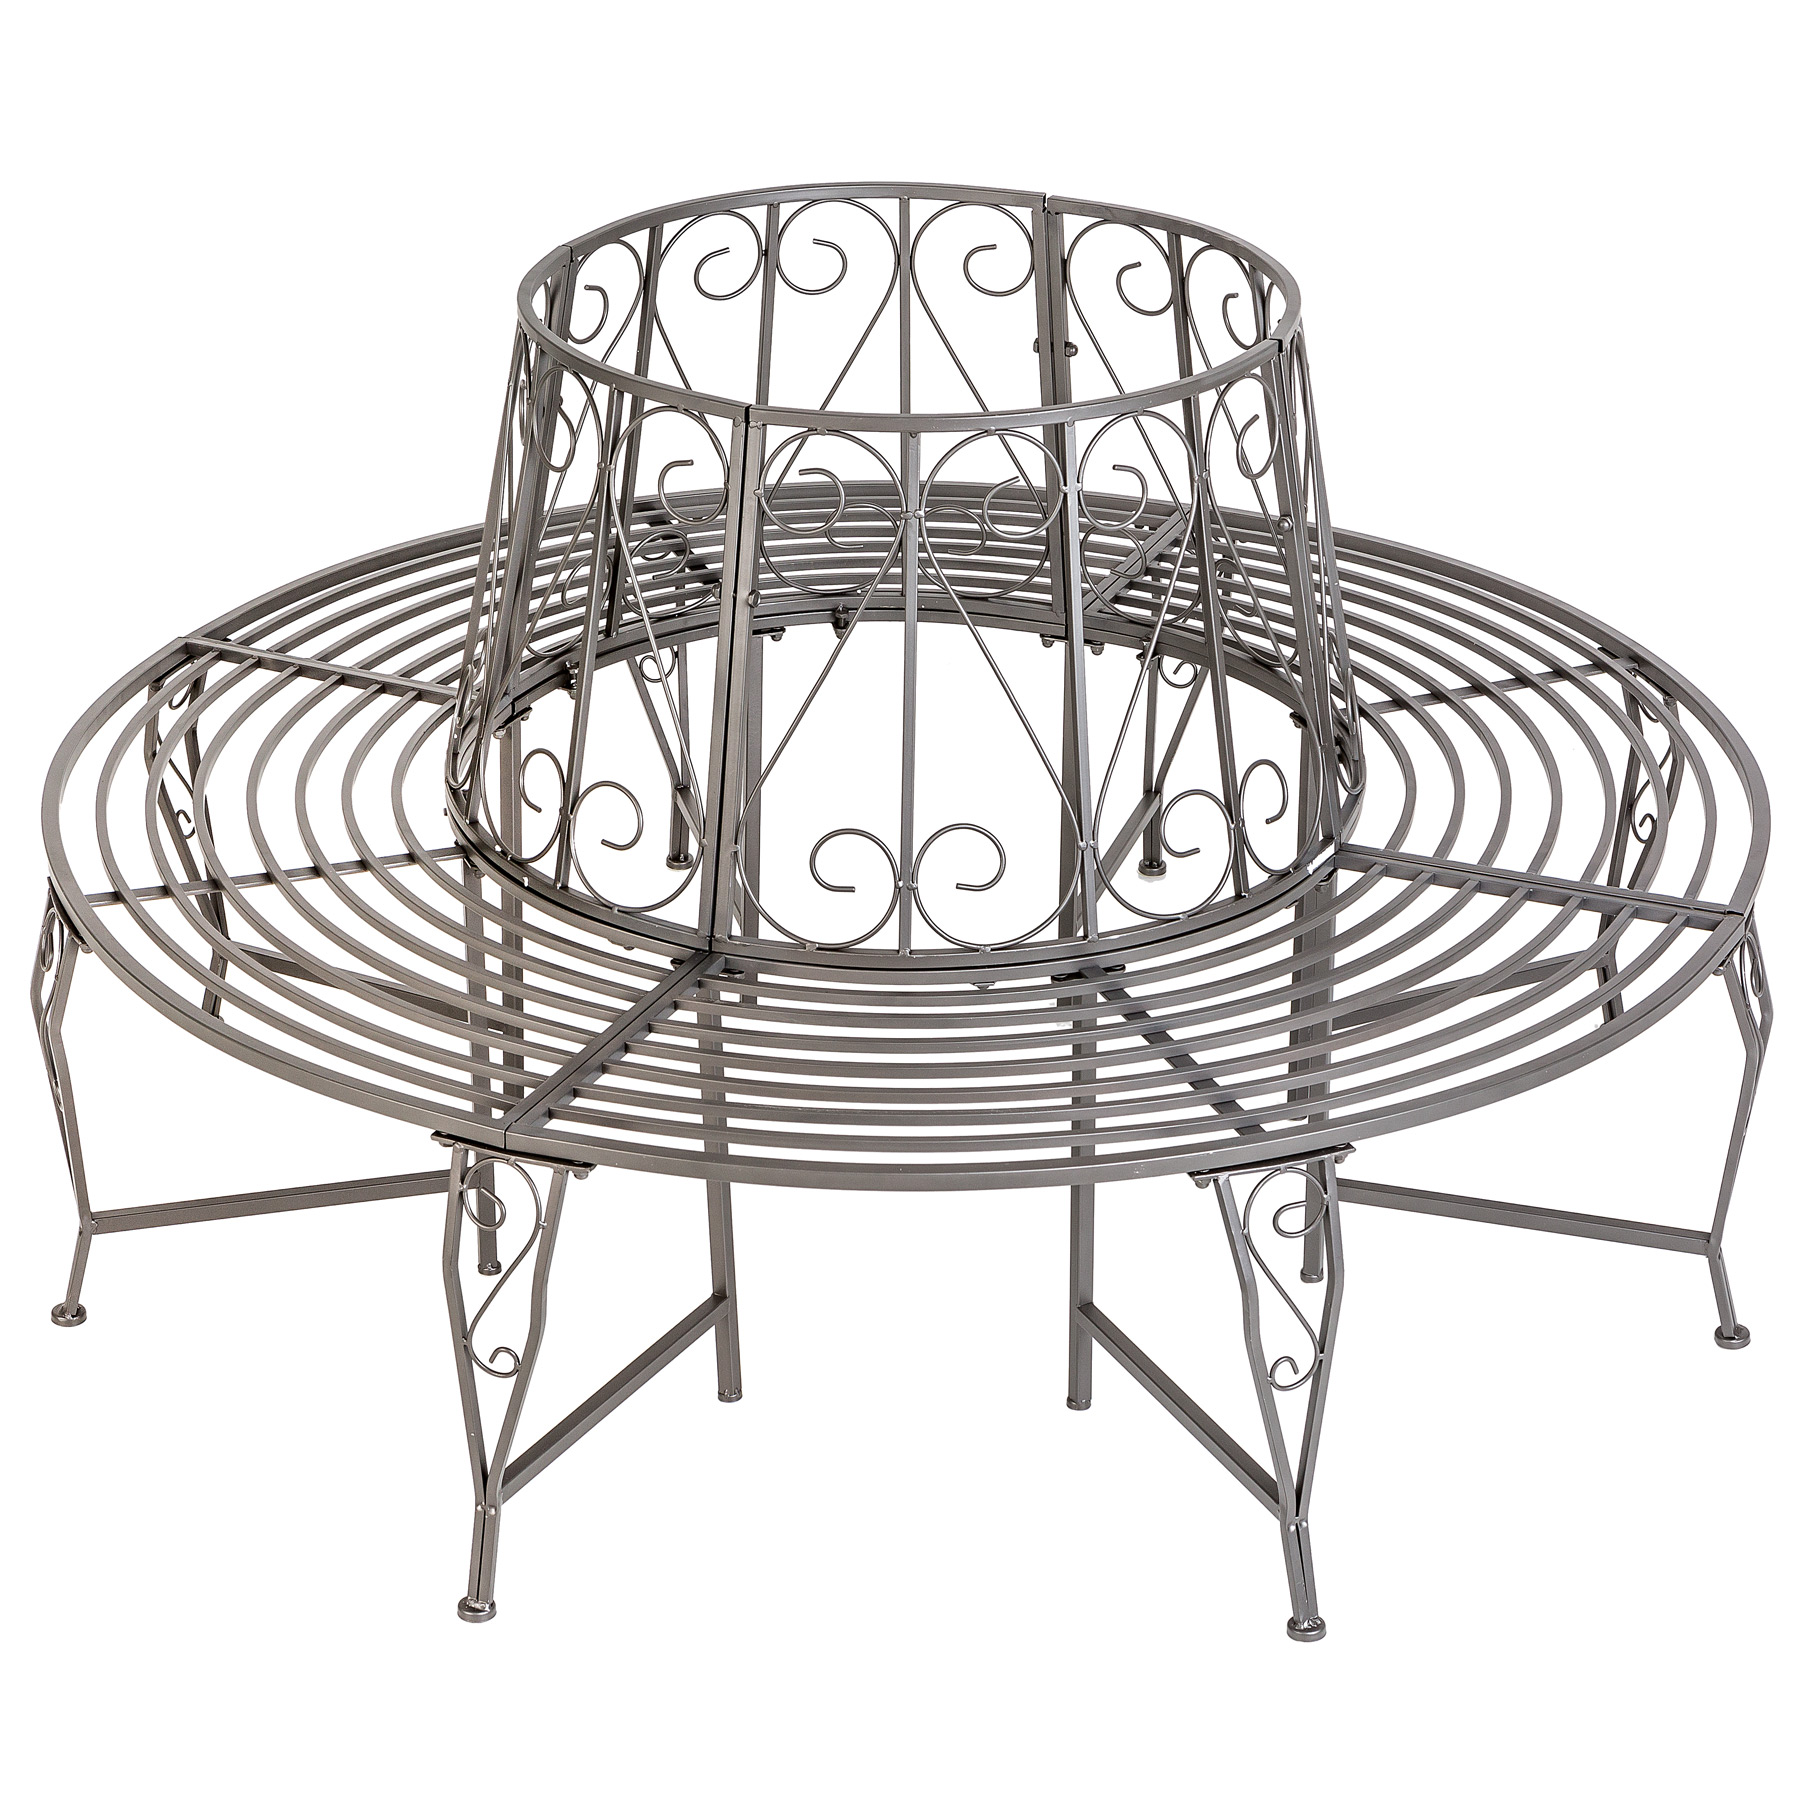 garden tree bench seat round steel circular antique furniture half anthracite ebay. Black Bedroom Furniture Sets. Home Design Ideas